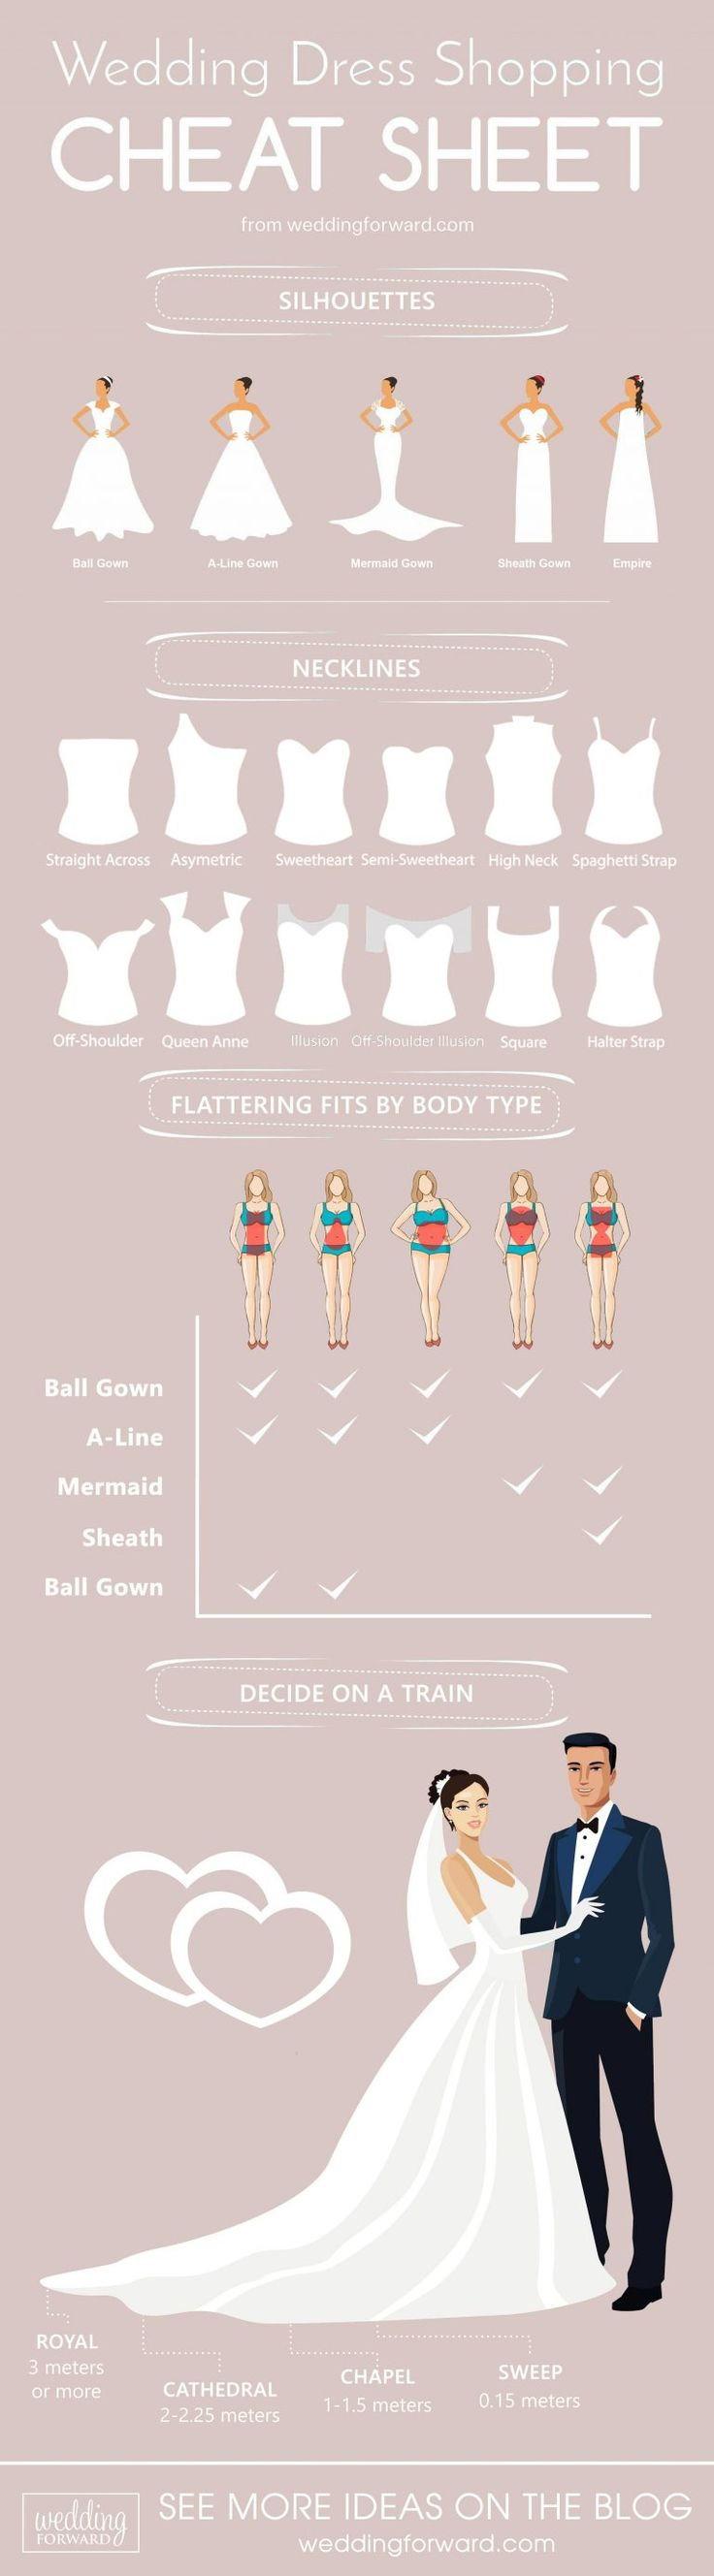 guide to wedding dresses cheat sheet